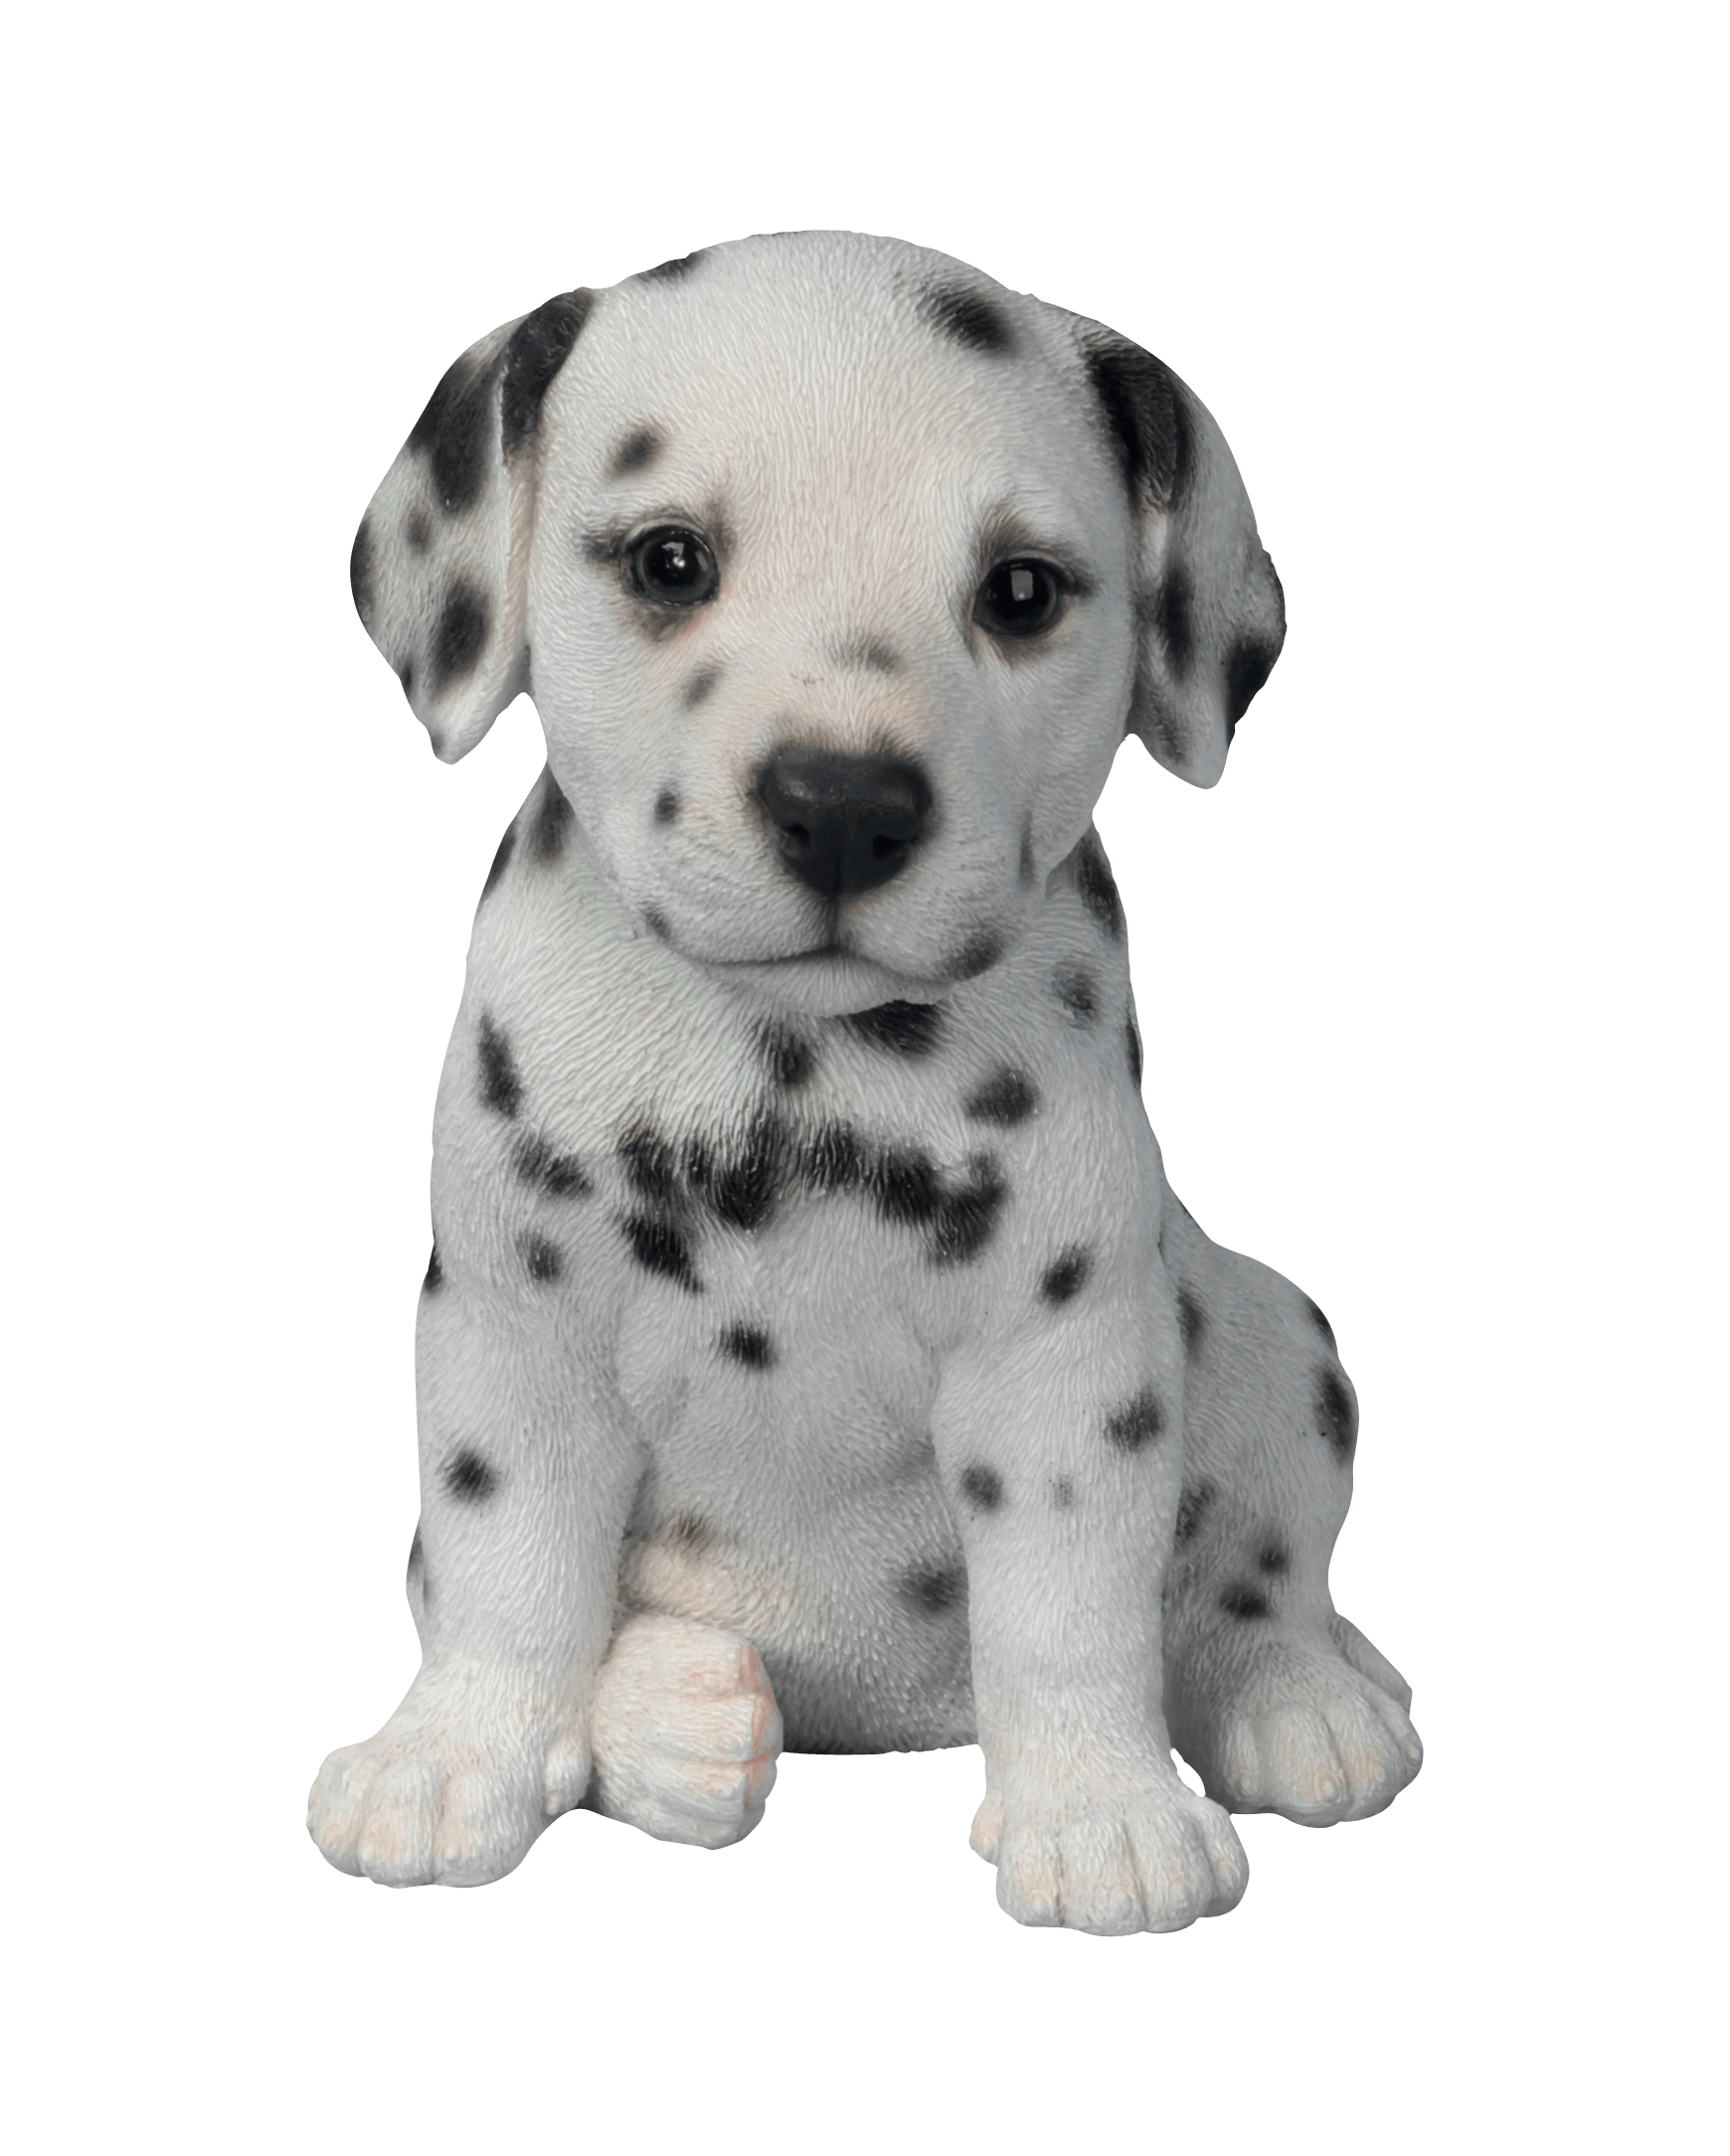 Dalmatian Puppy transparent PNG.